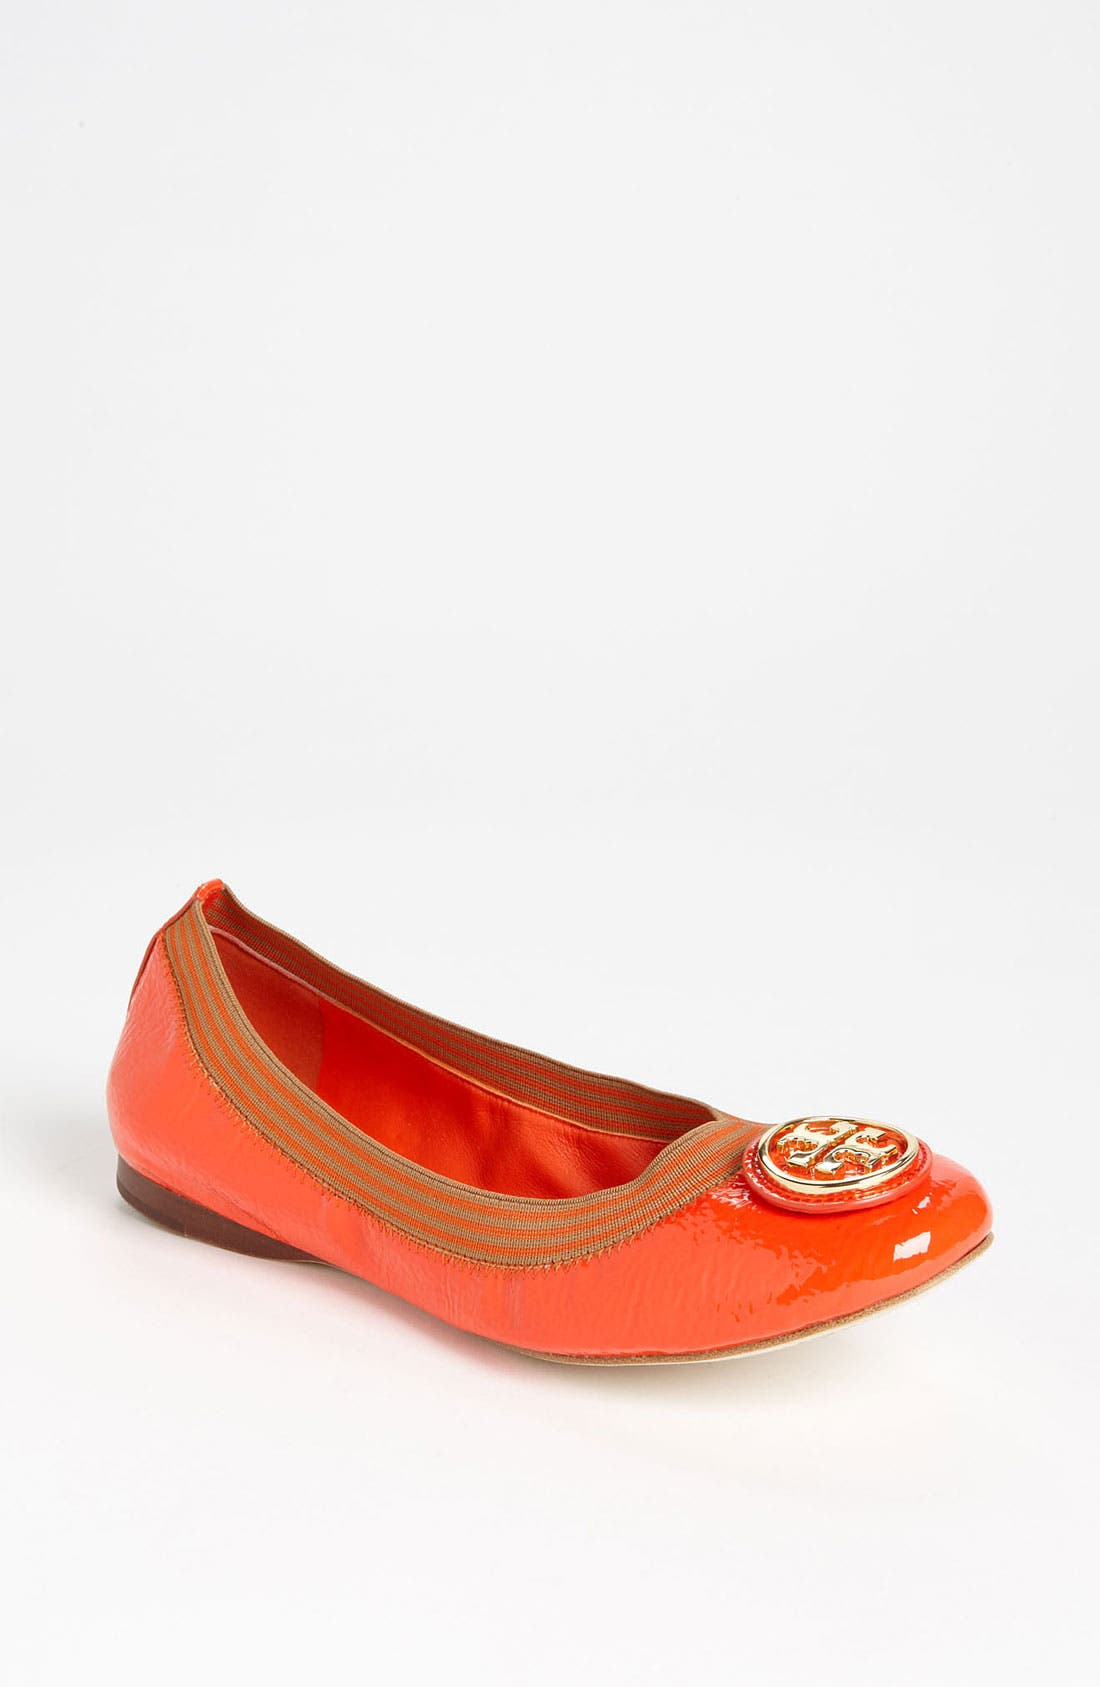 Alternate Image 1 Selected - Tory Burch 'Caroline' Flat (Exclusive Color)